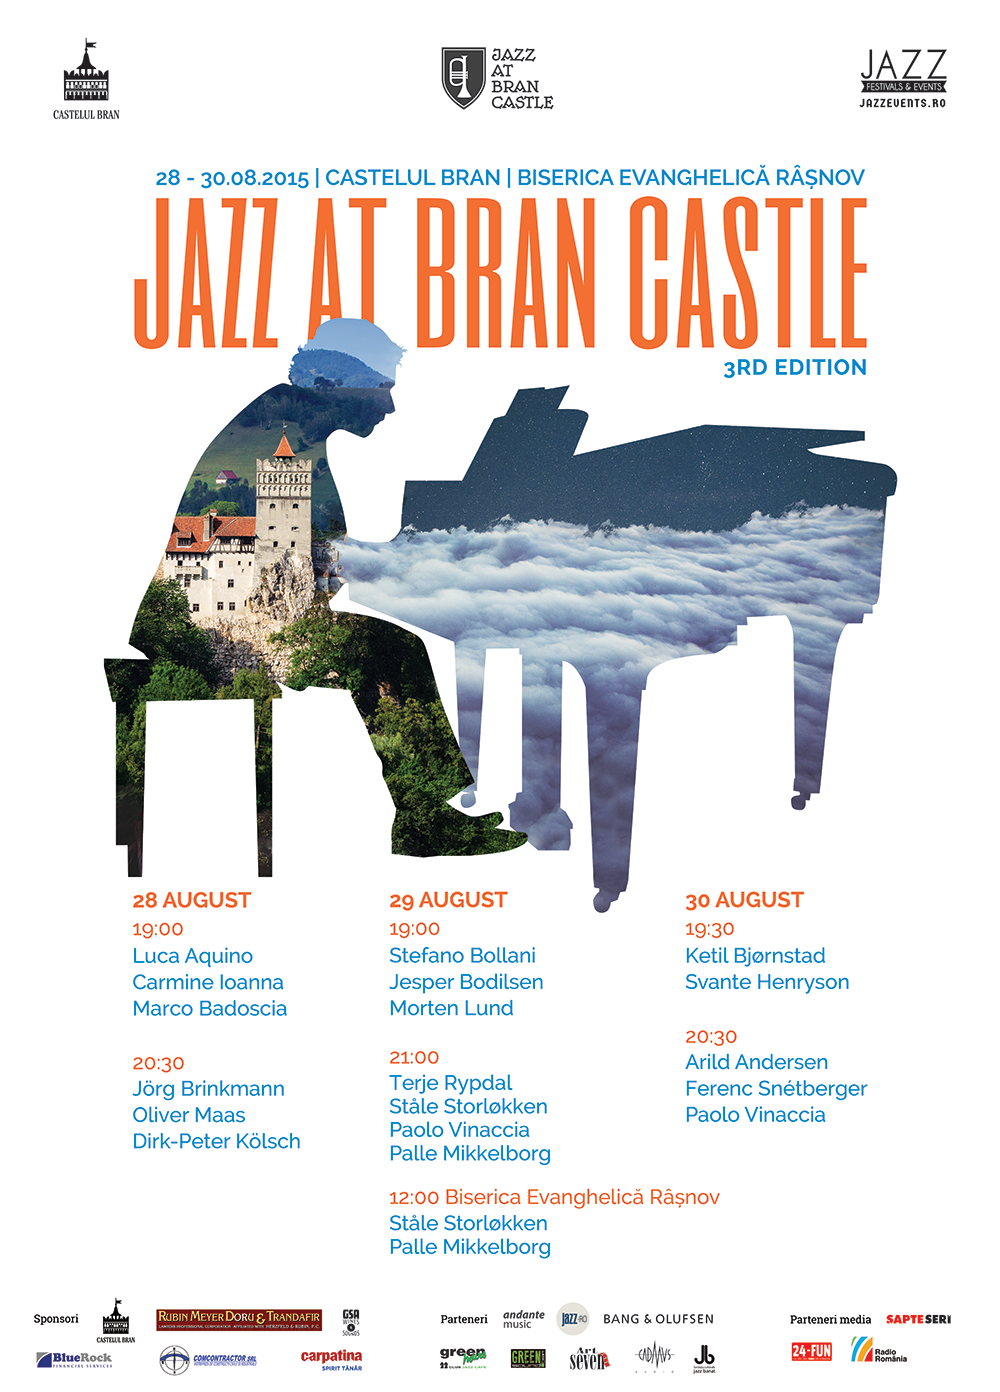 Afiș Jazz at Bran Castle Festival 2015